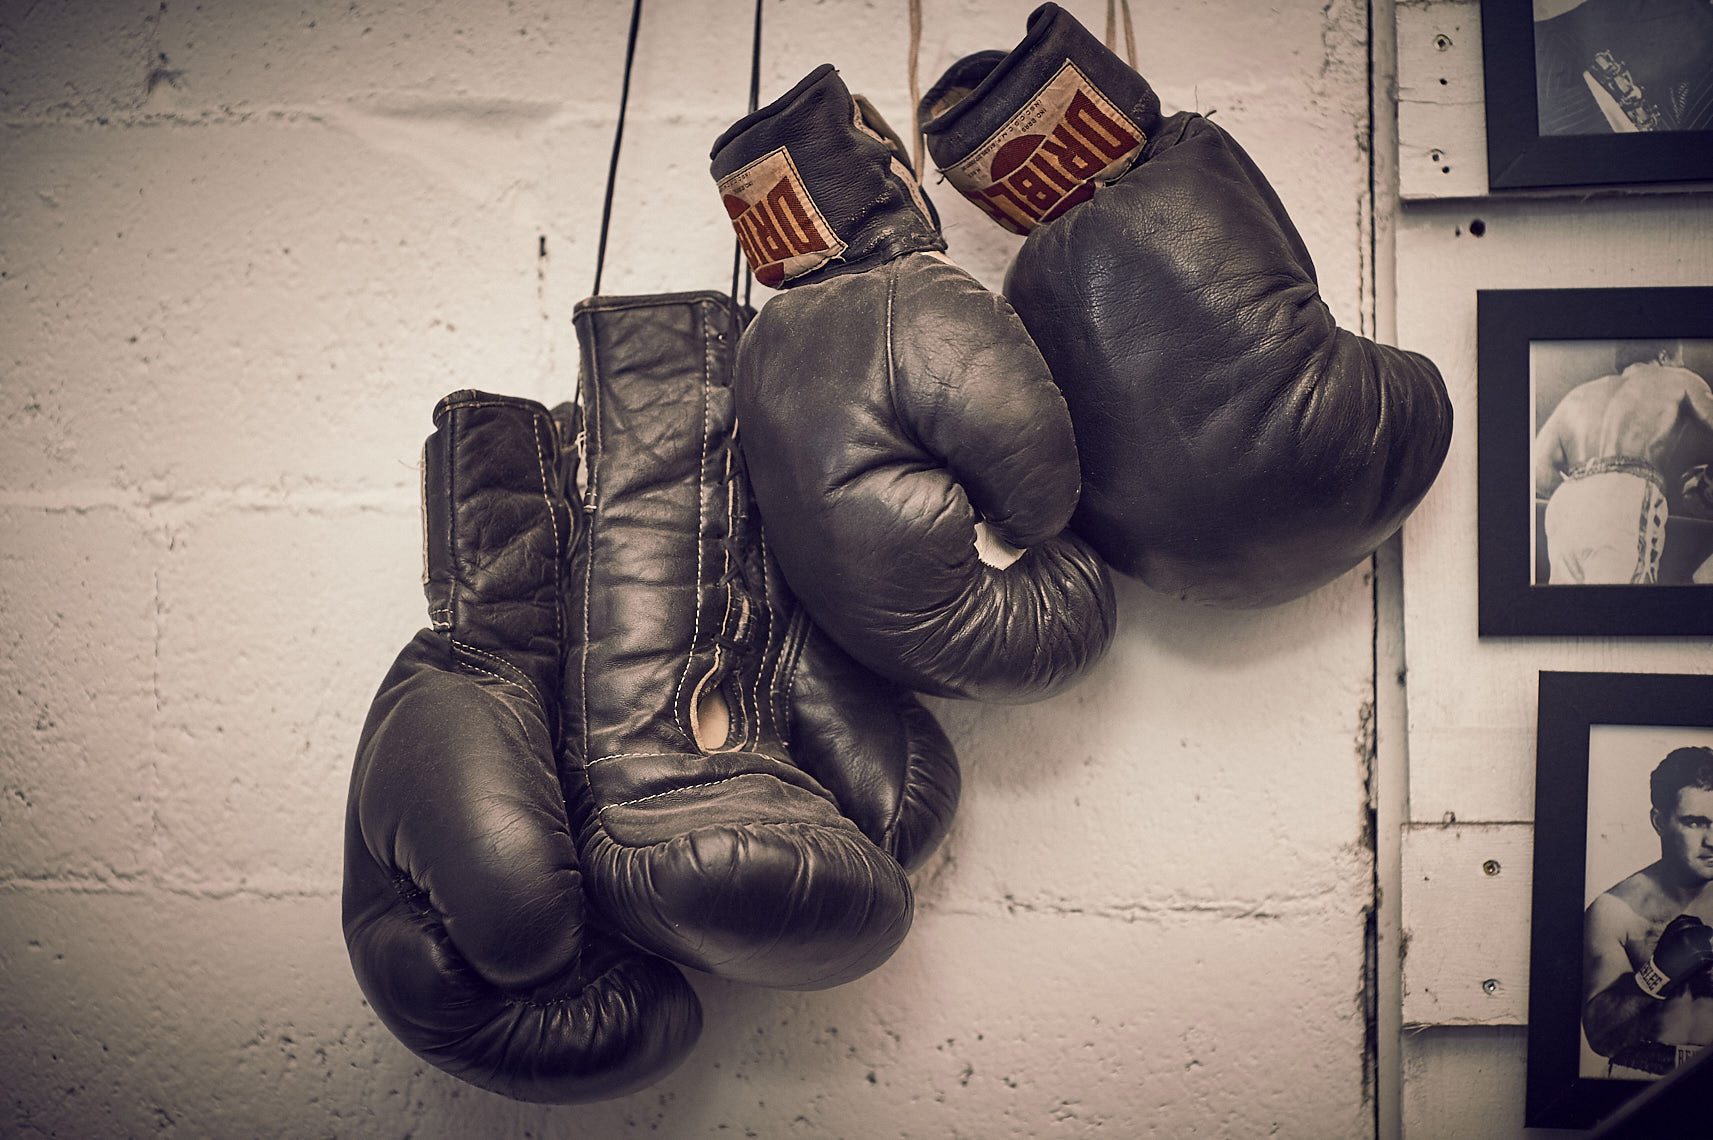 vintage boxing gloves hanging in boxing gym photographed by Vancouver photographer Waldy Martens